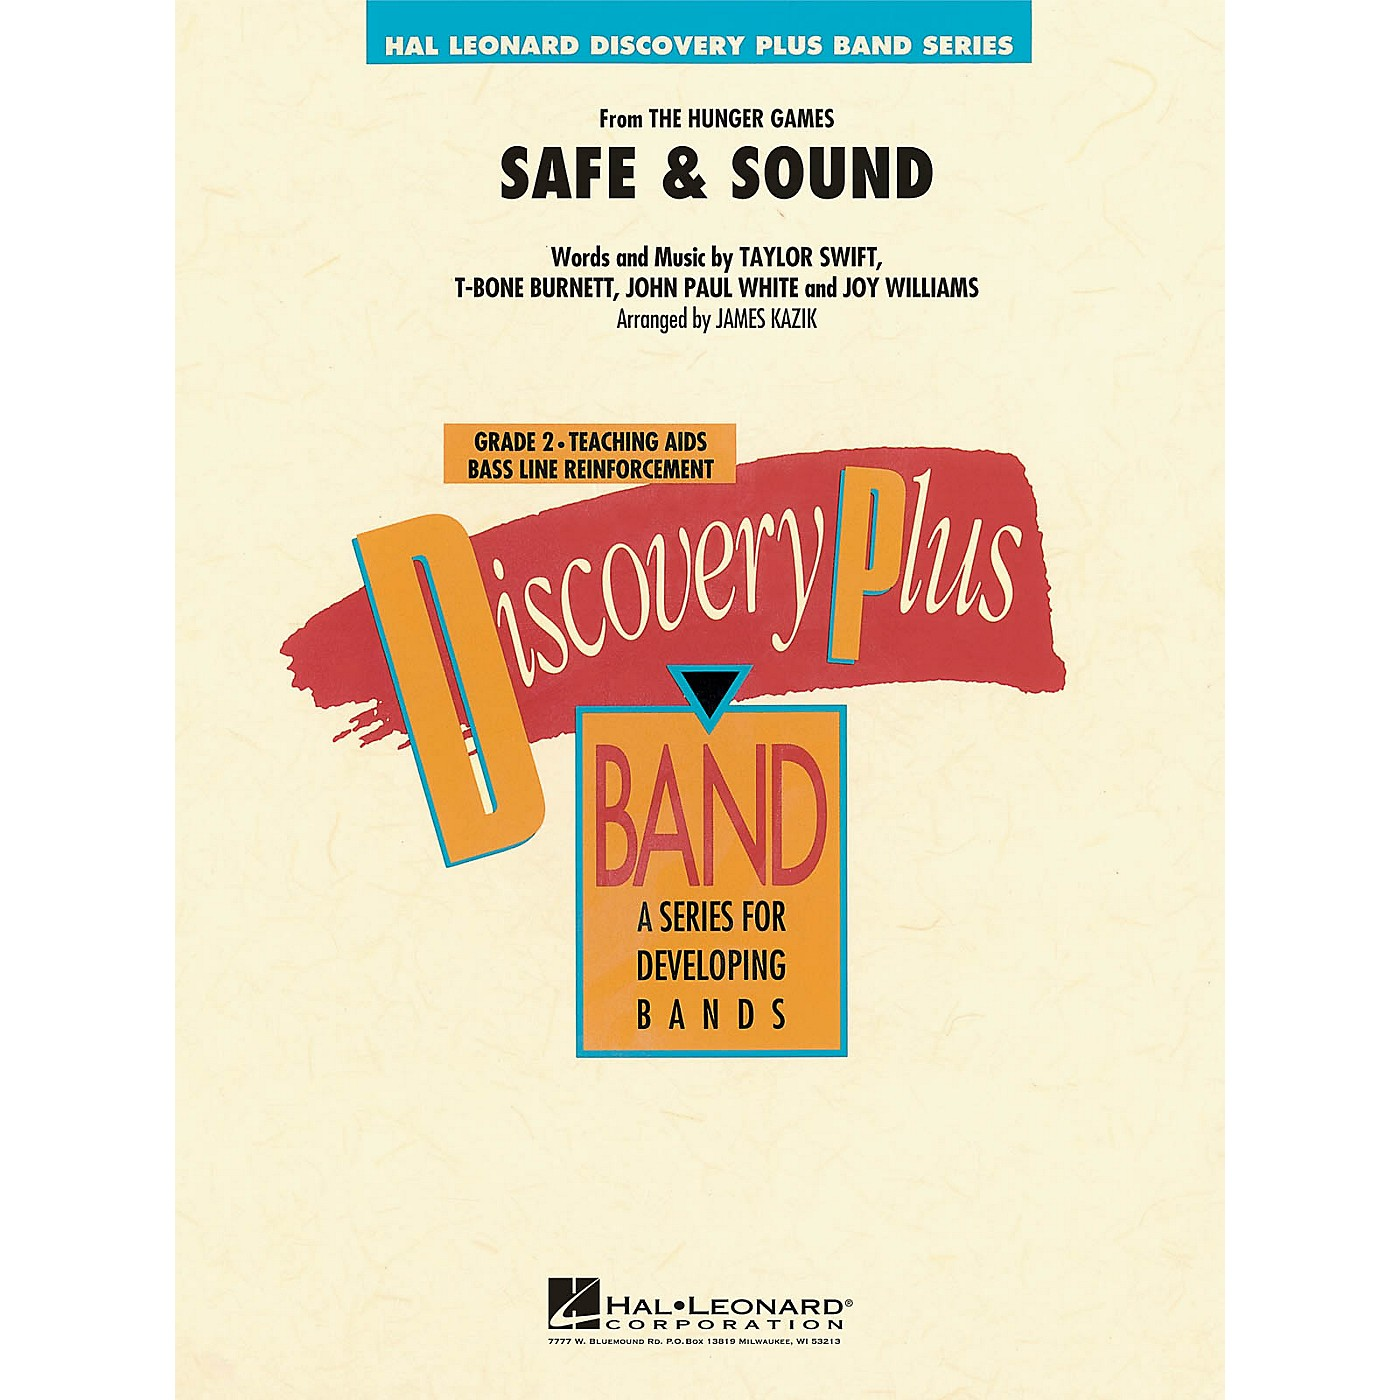 Hal Leonard Safe & Sound (From Hunger Games) - Discovery Plus! Band Series Level 2 thumbnail